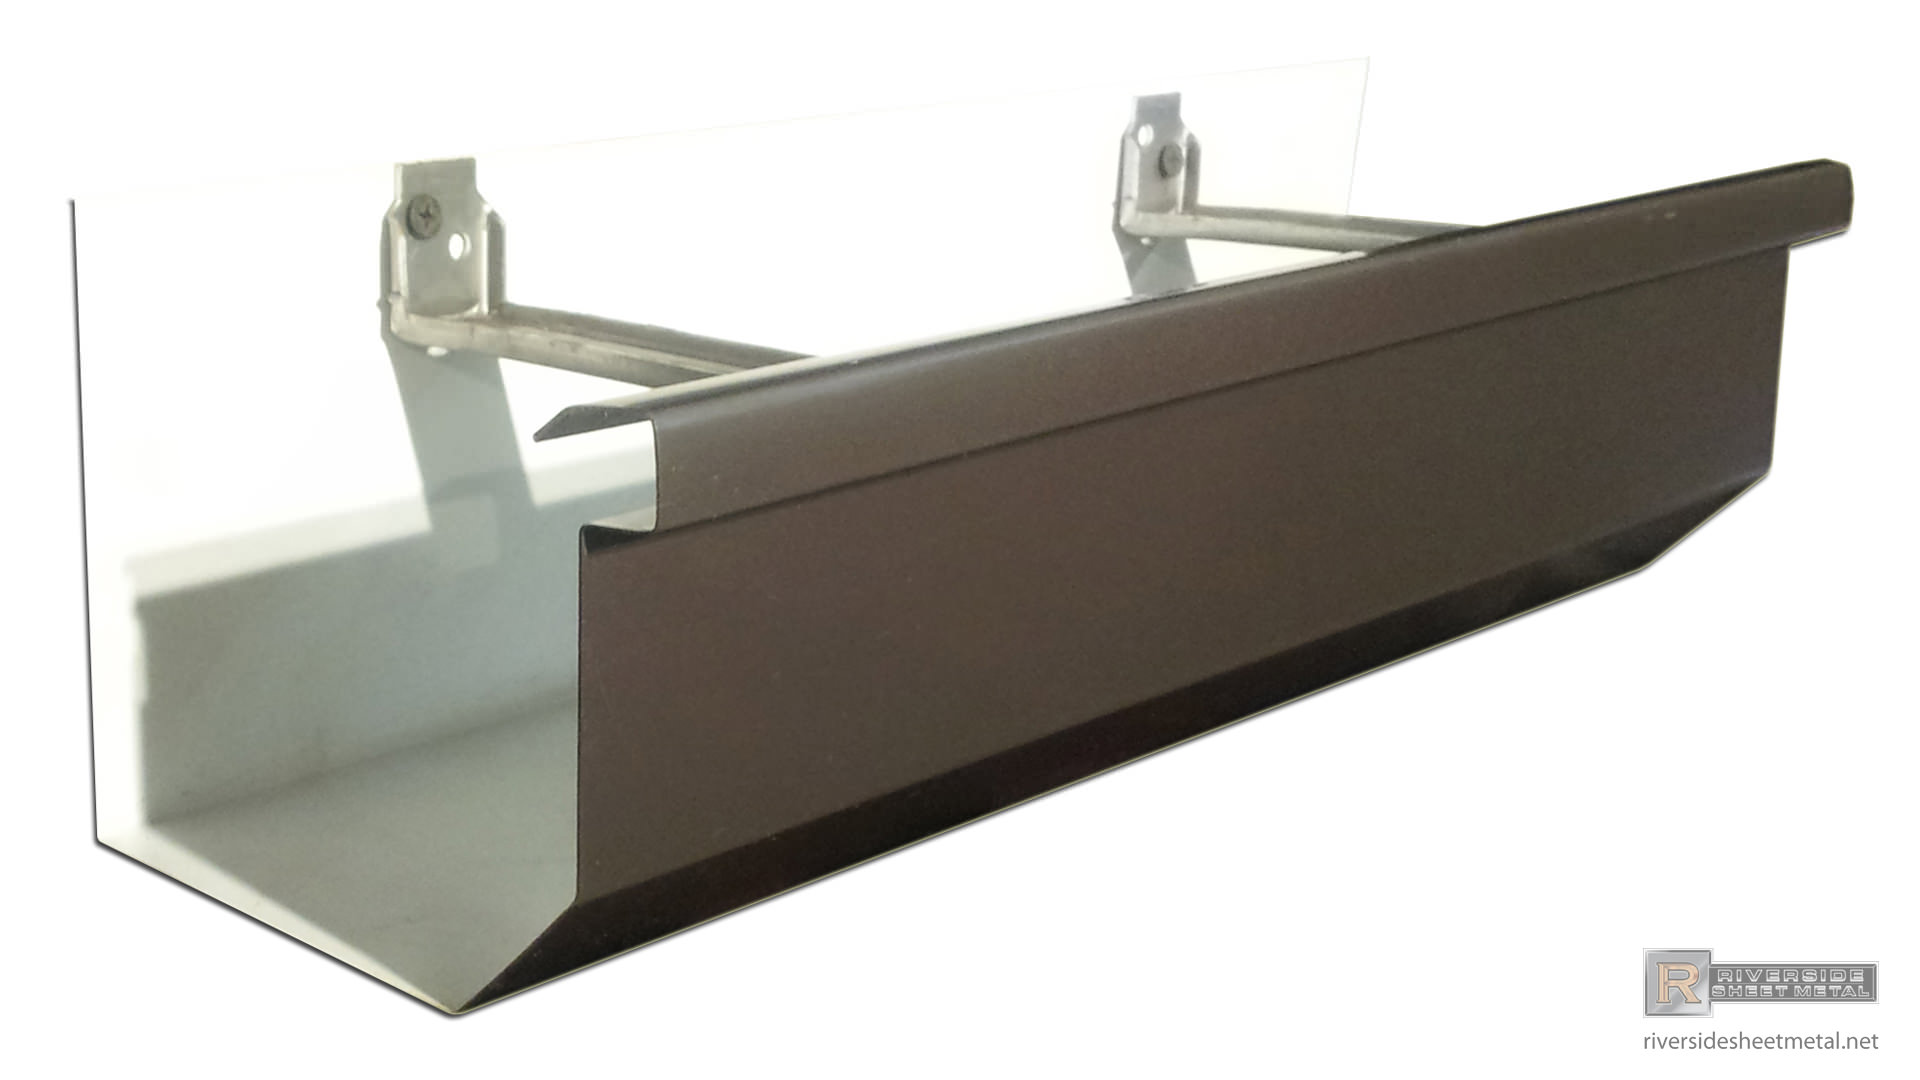 Box Gutters Copper Aluminum Lcc Tcsii And More